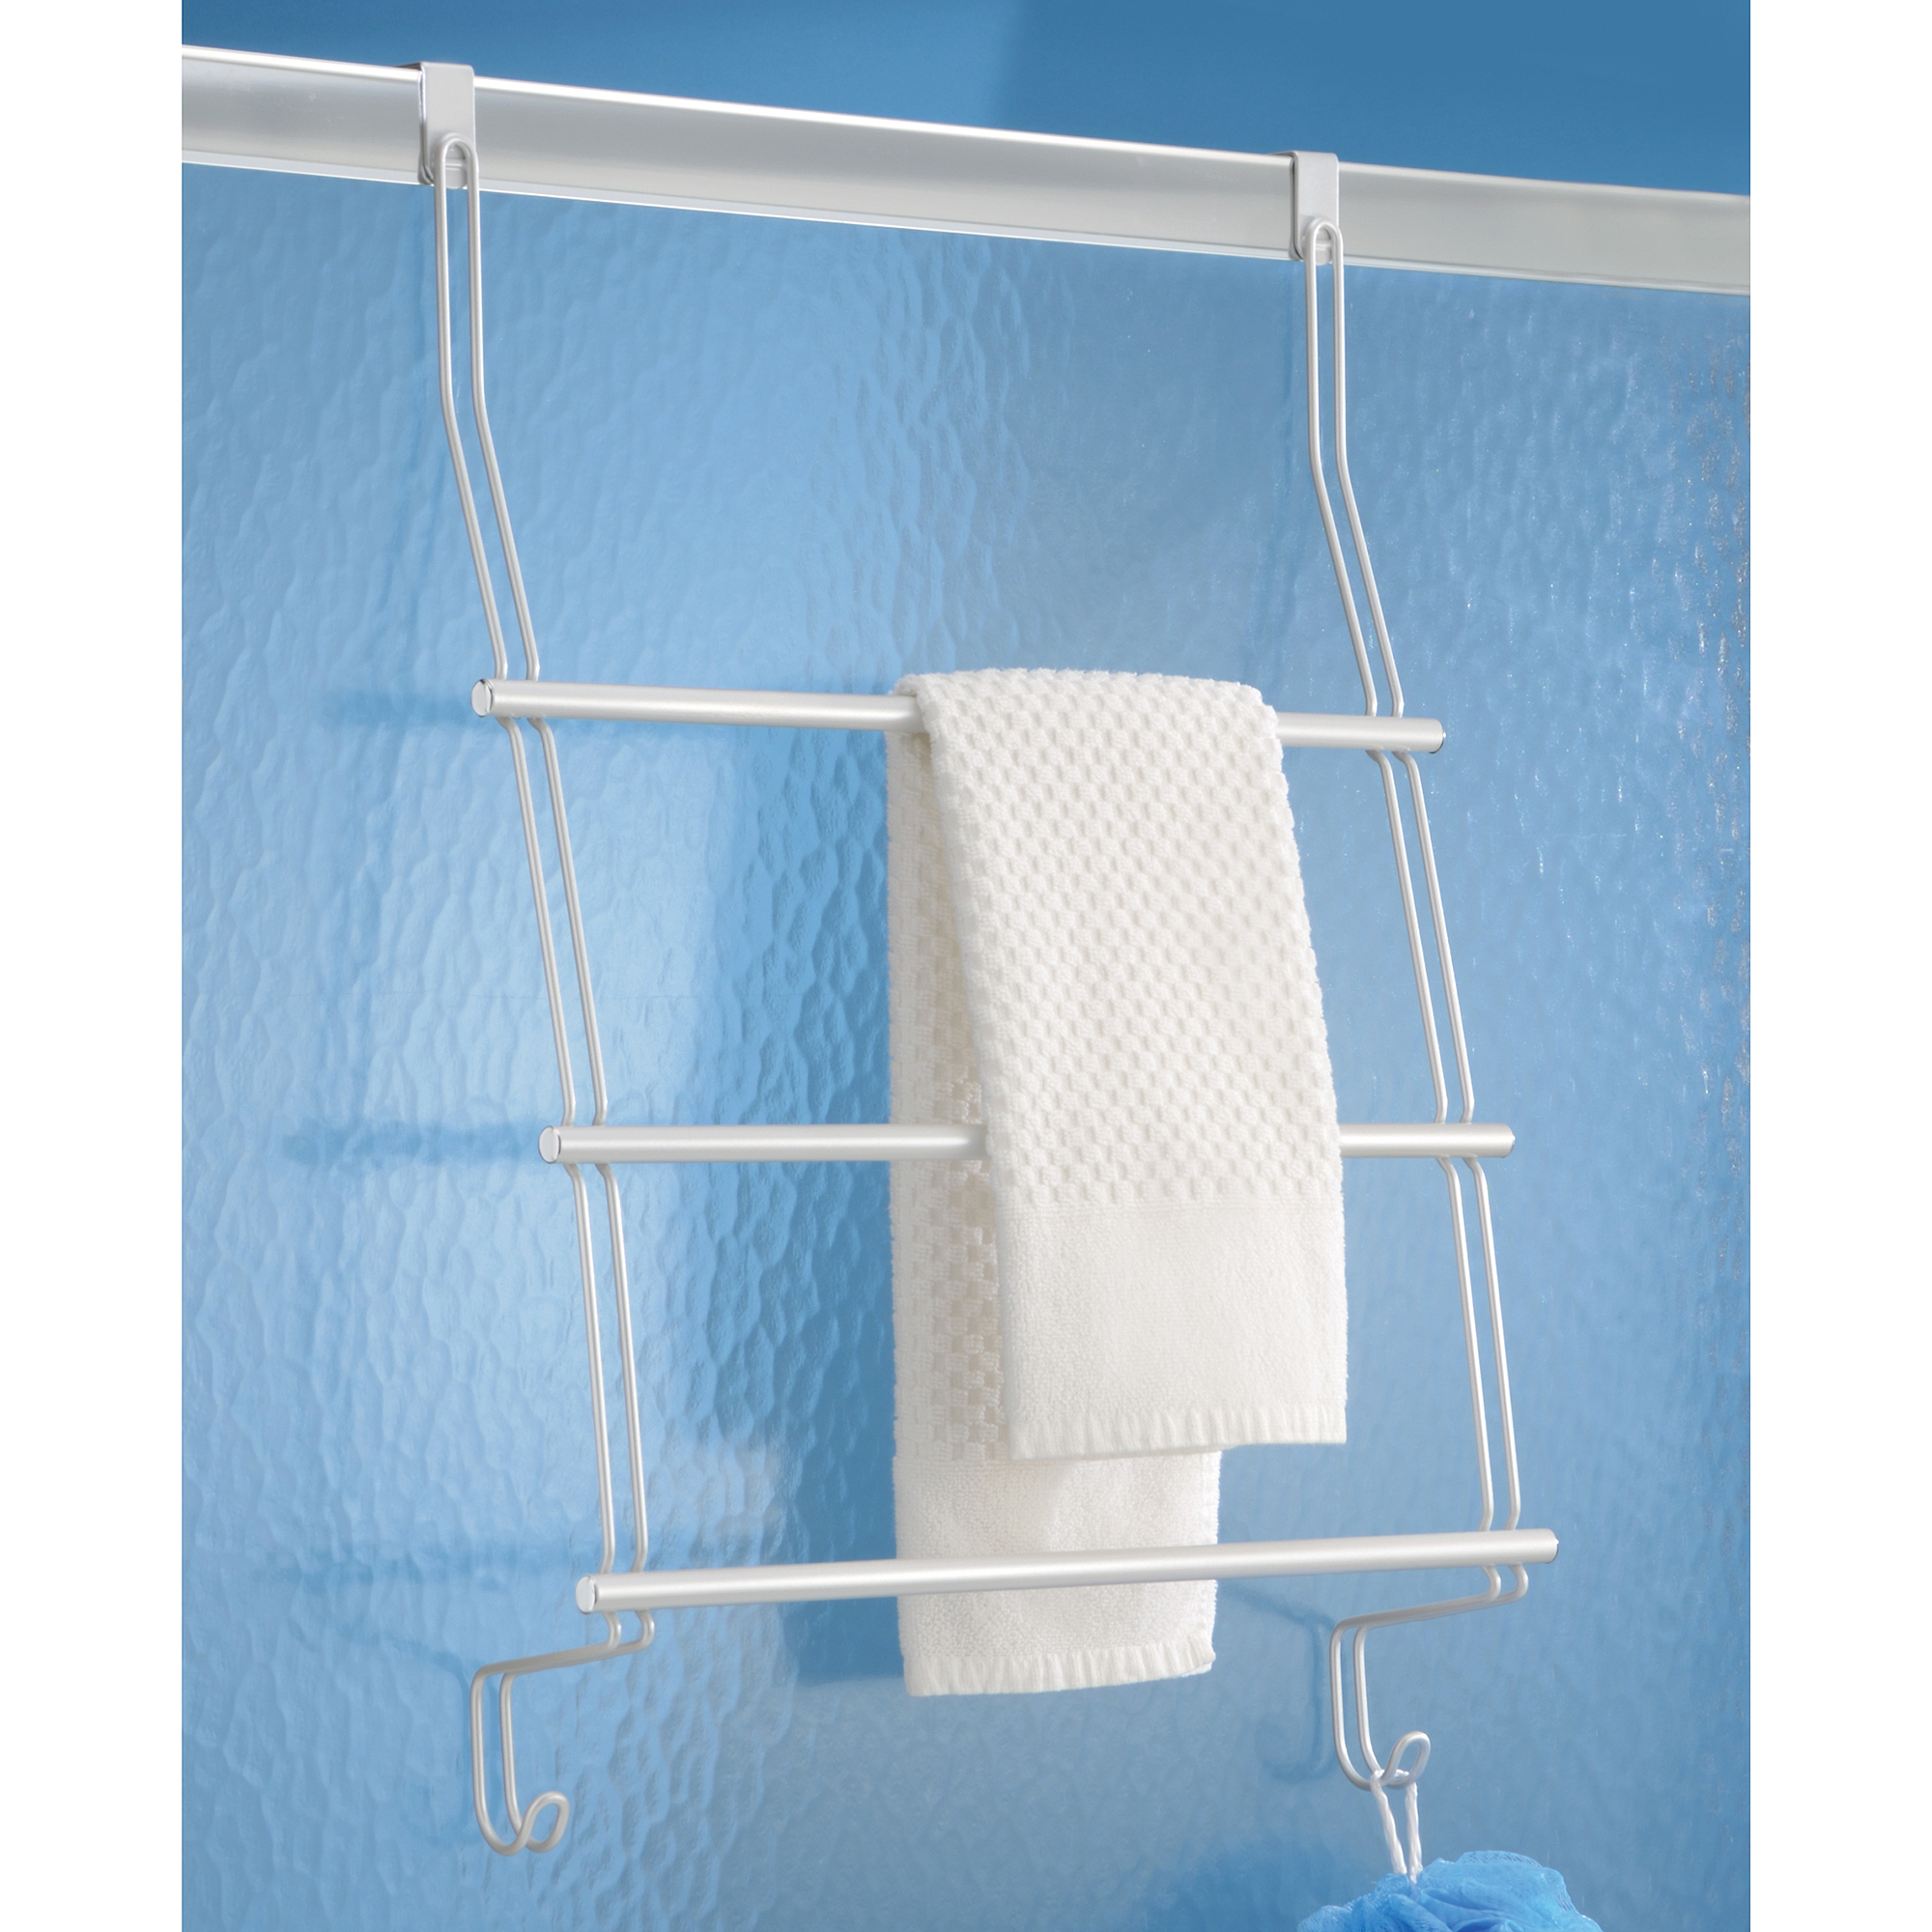 InterDesign Classico Over-the-Door Towel Rack - Walmart.com